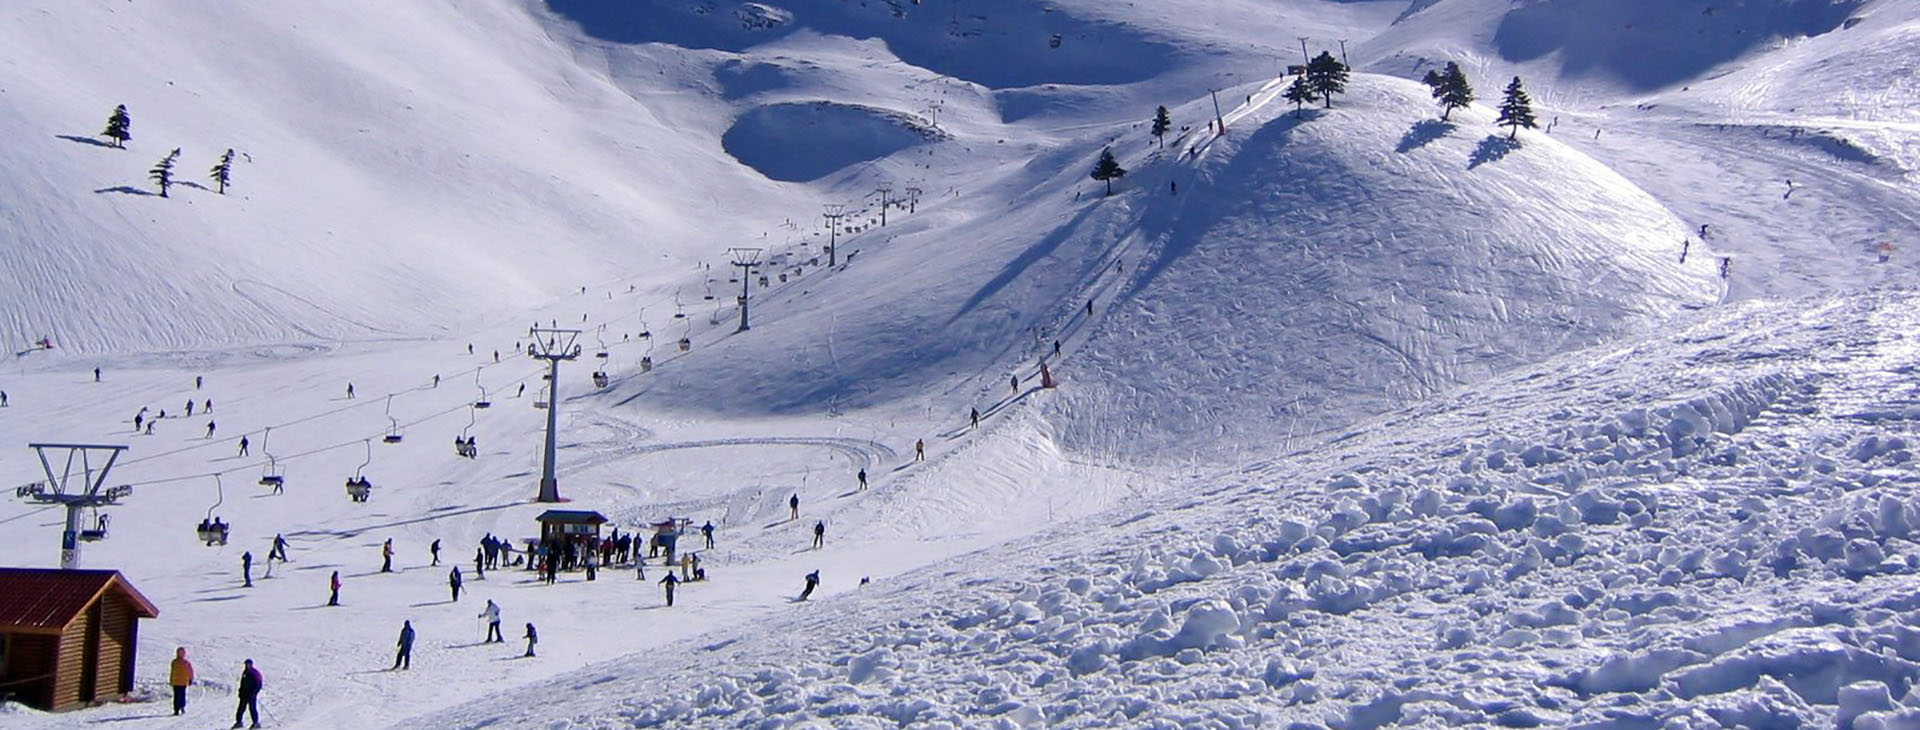 Seli Ski Center, Mt. Vermio, Imathia